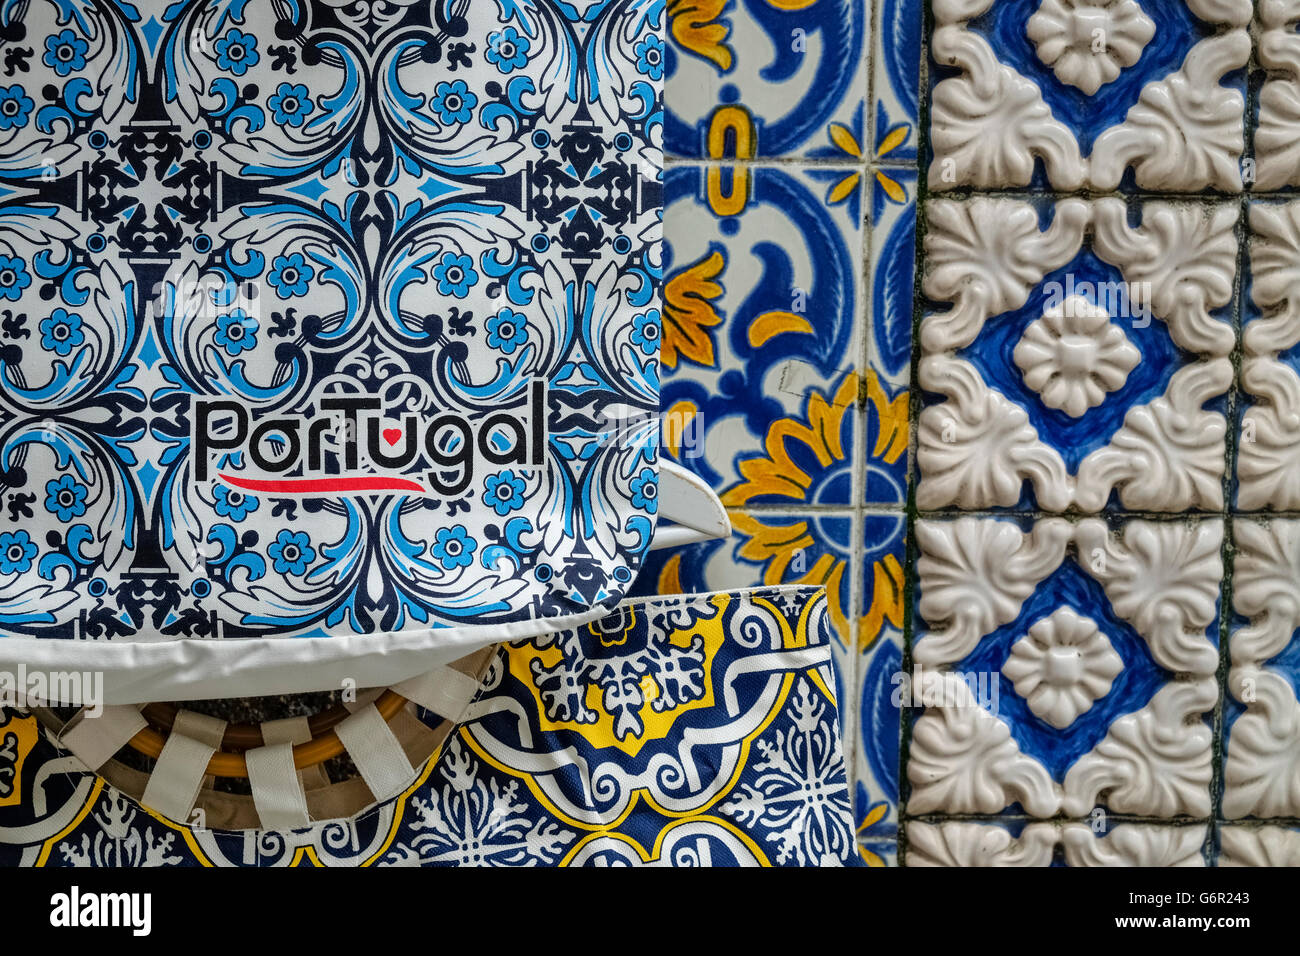 Portugal souvenir shop items displayed on a wall, with Portuguese azulejo tiles in the background. - Stock Image